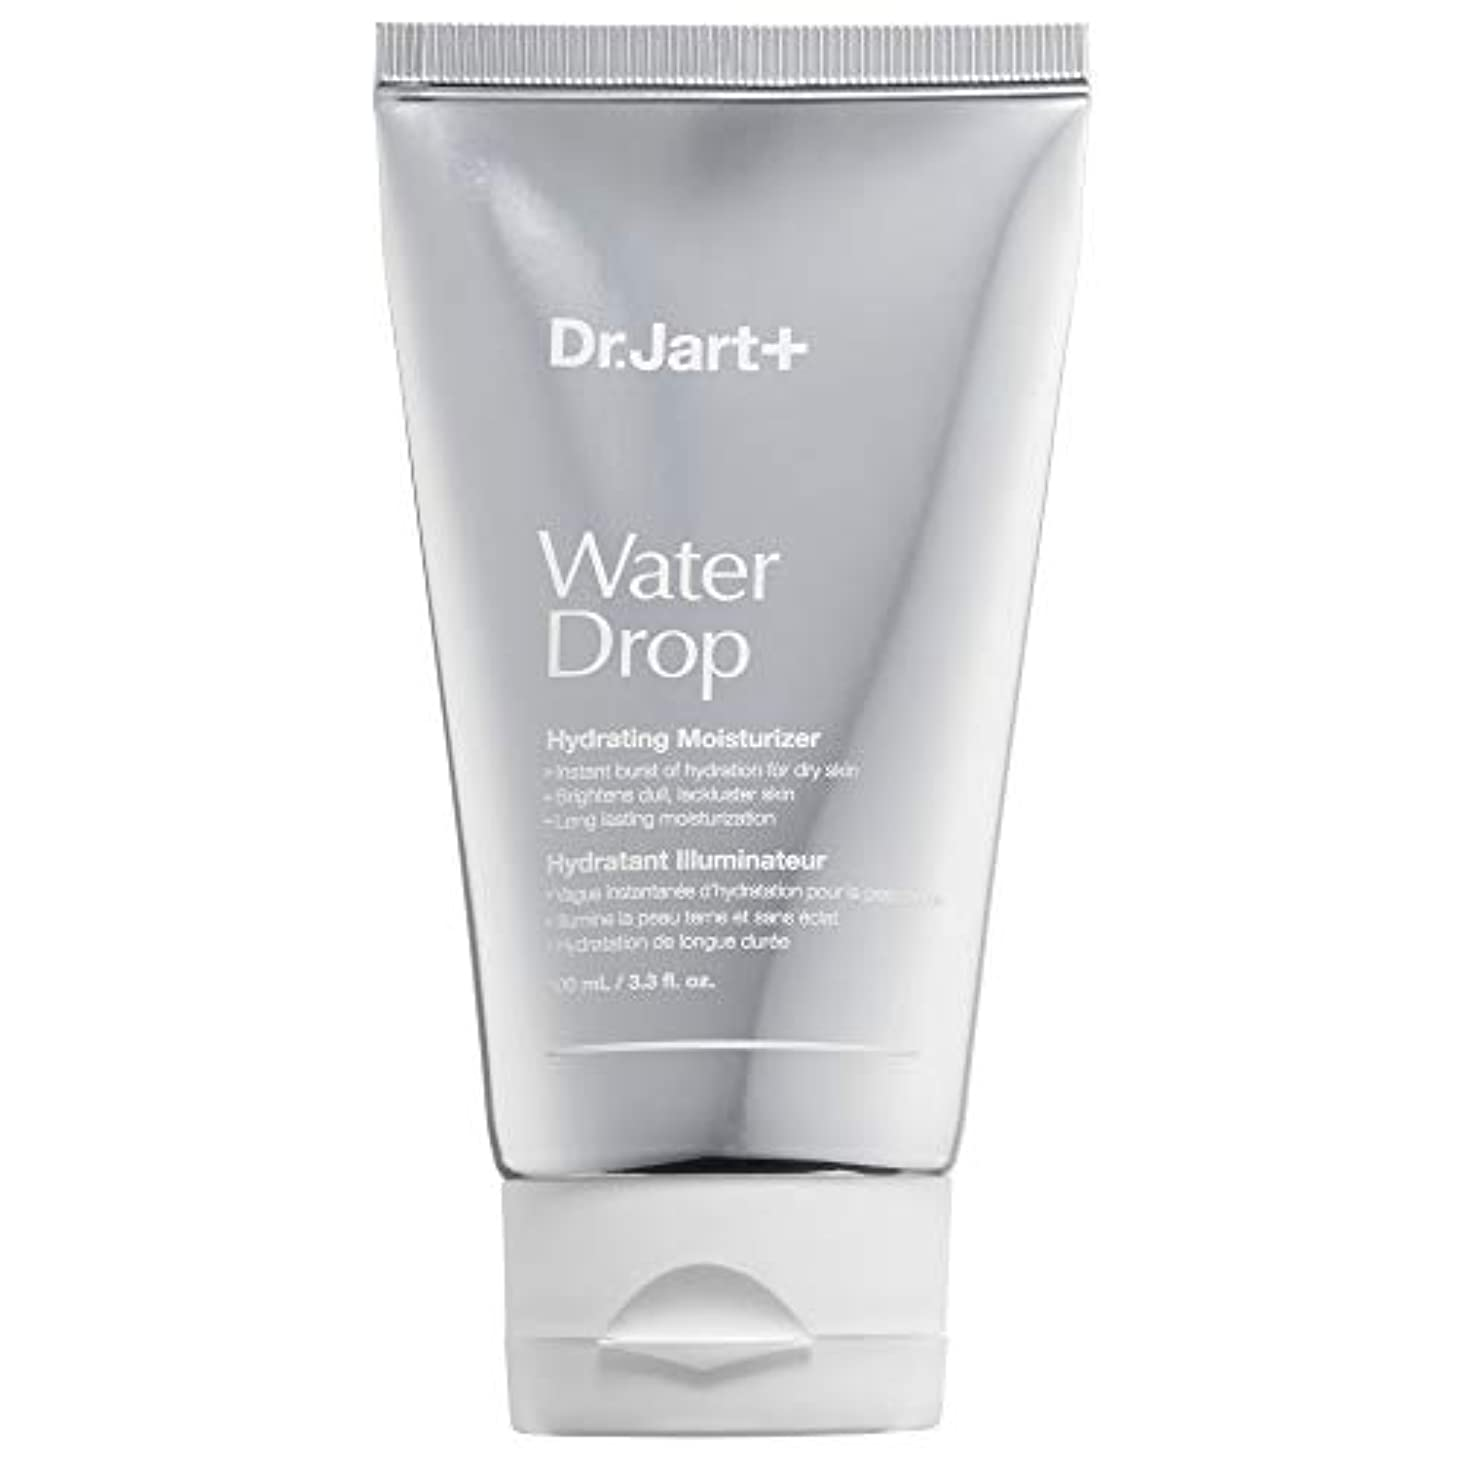 ヘルパー突き出すカフェテリアDr.jart+ Water Drop Hydrating Moisturizer